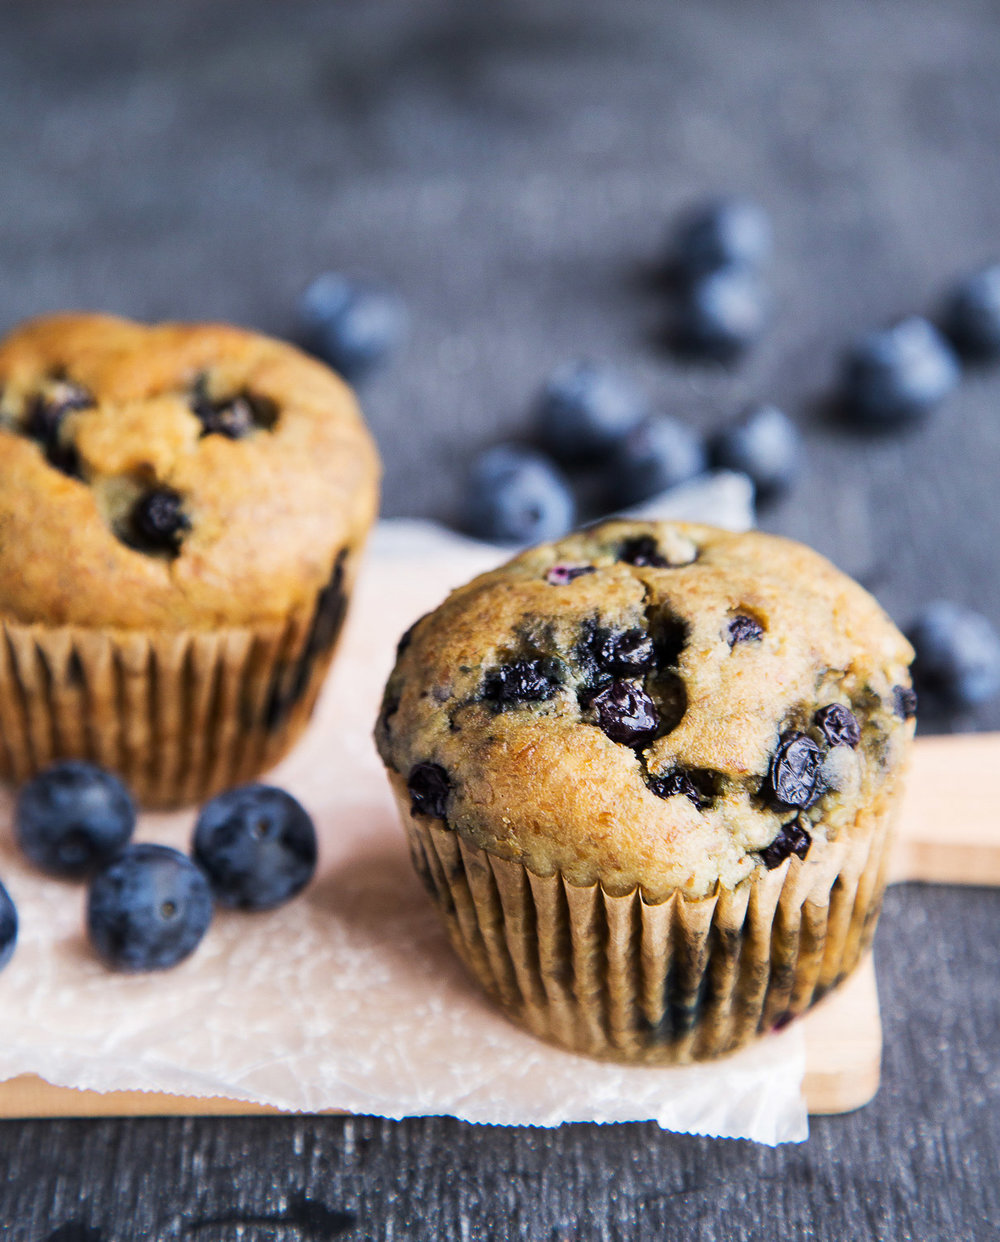 blueberry muffins and blueberries